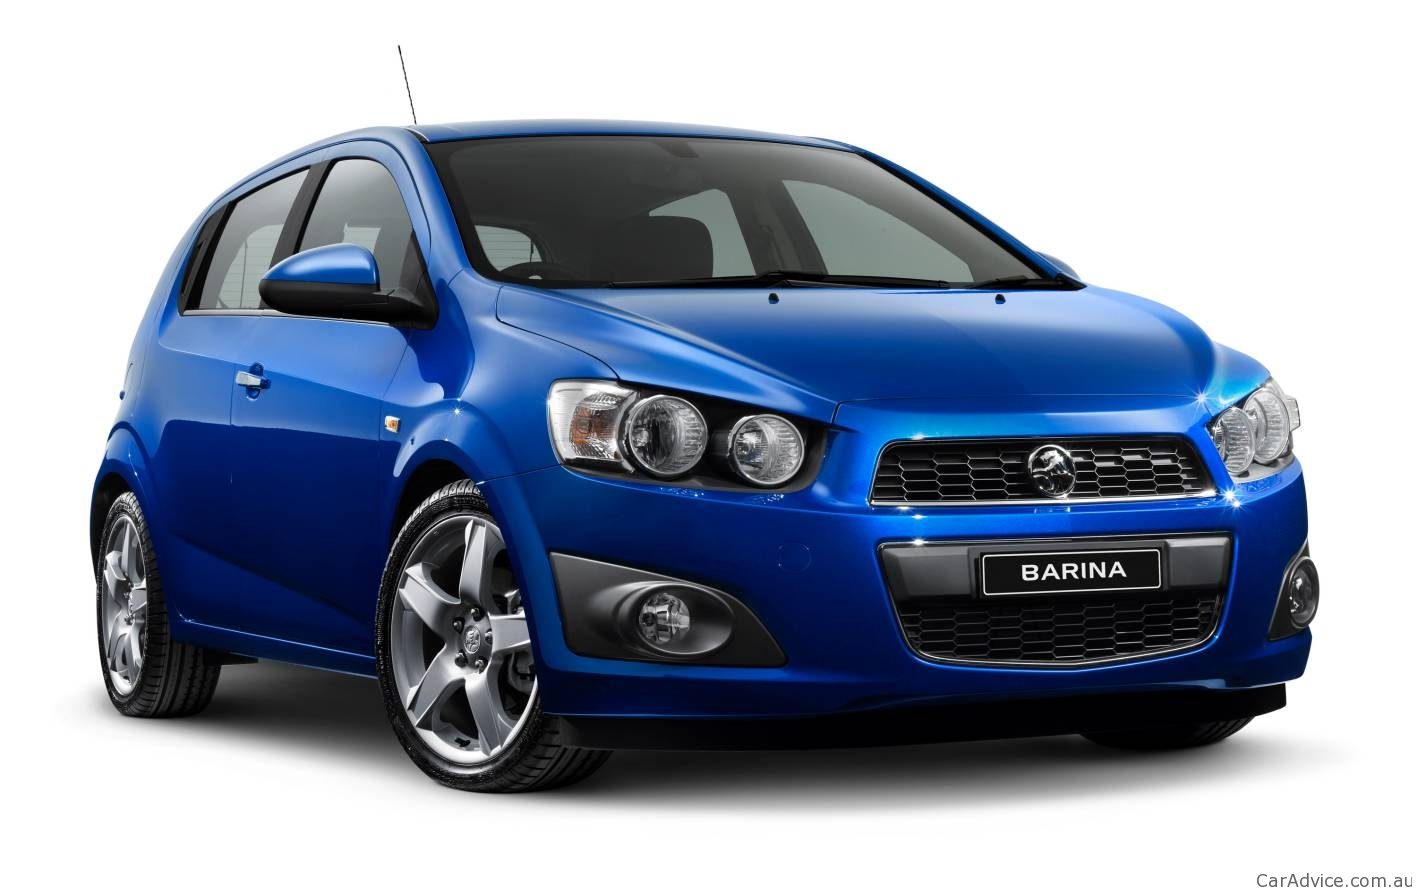 2012 Holden Barina Australian Prices And Specifications Photos